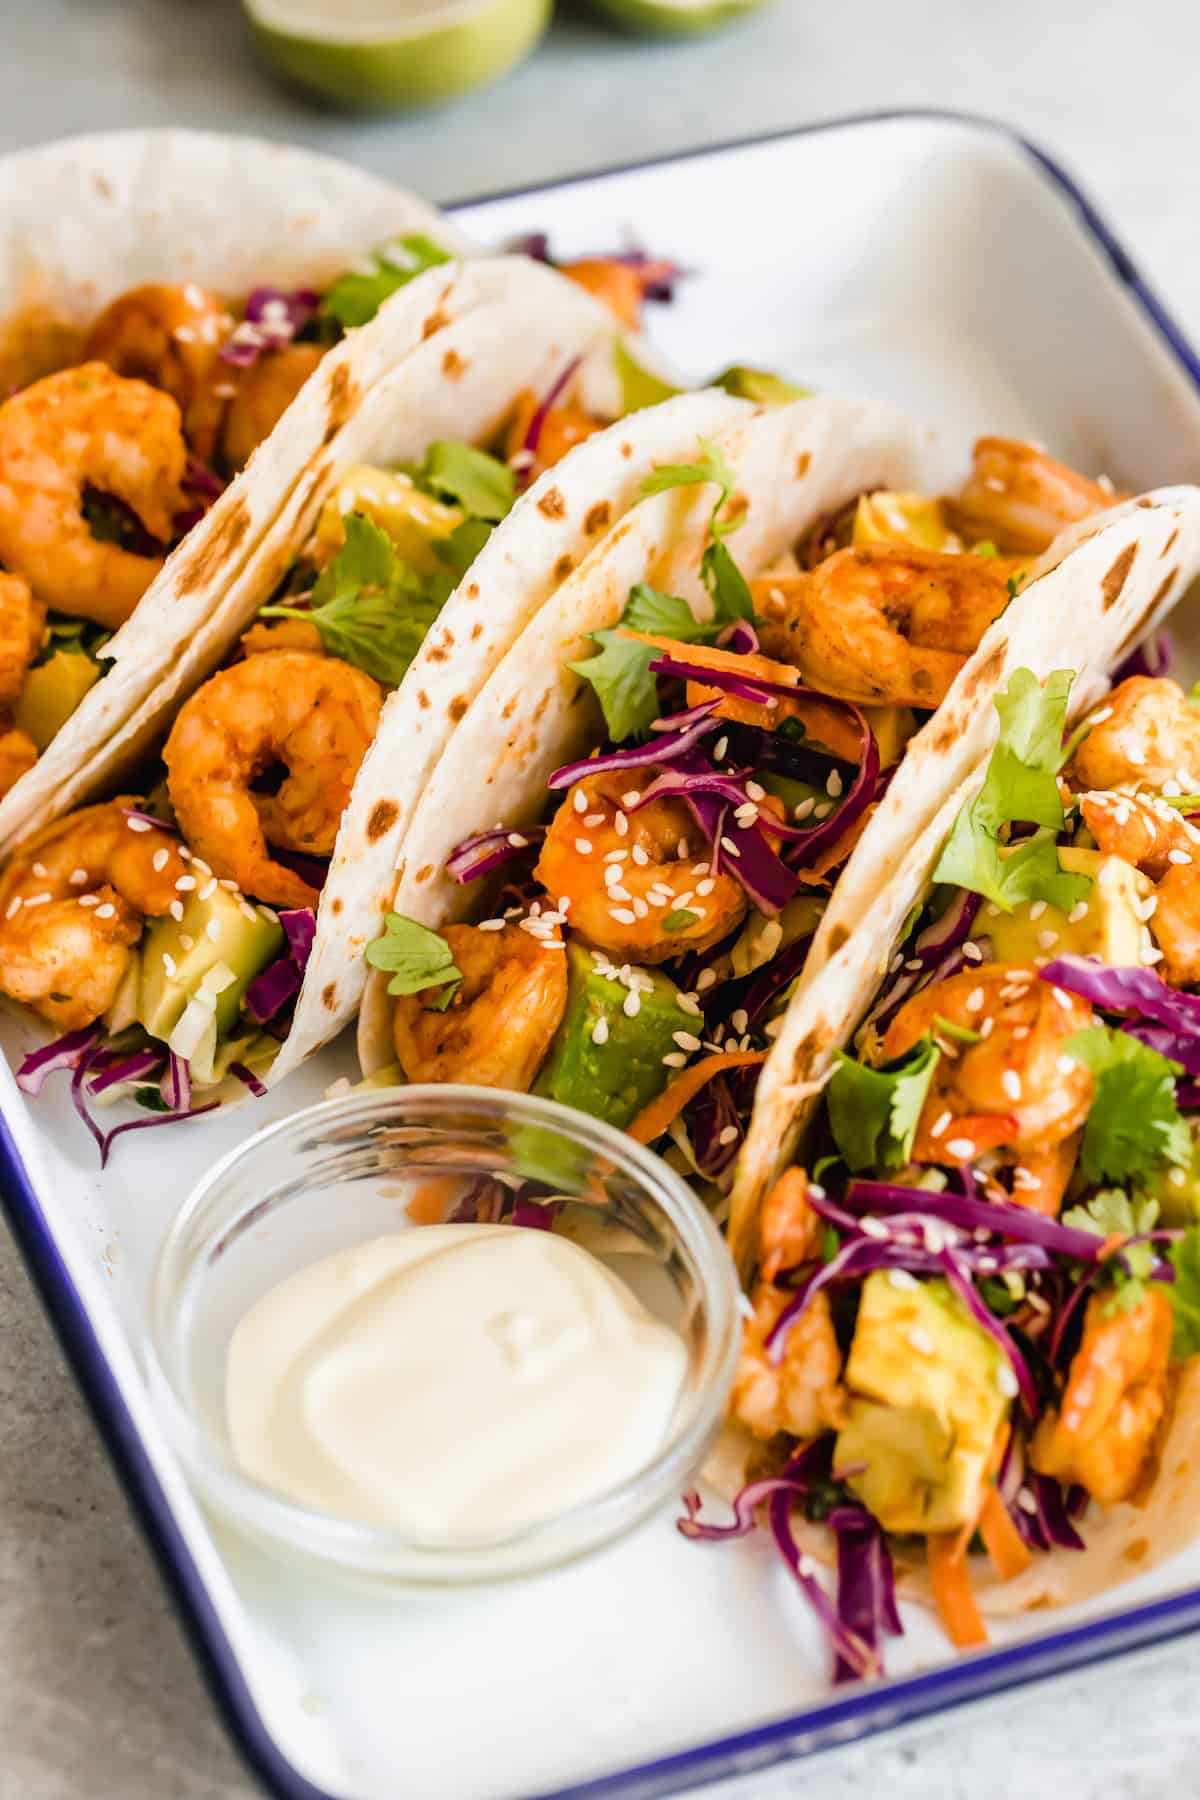 A Platter Holding Four Shrimp Tacos and a Dish of Dressing